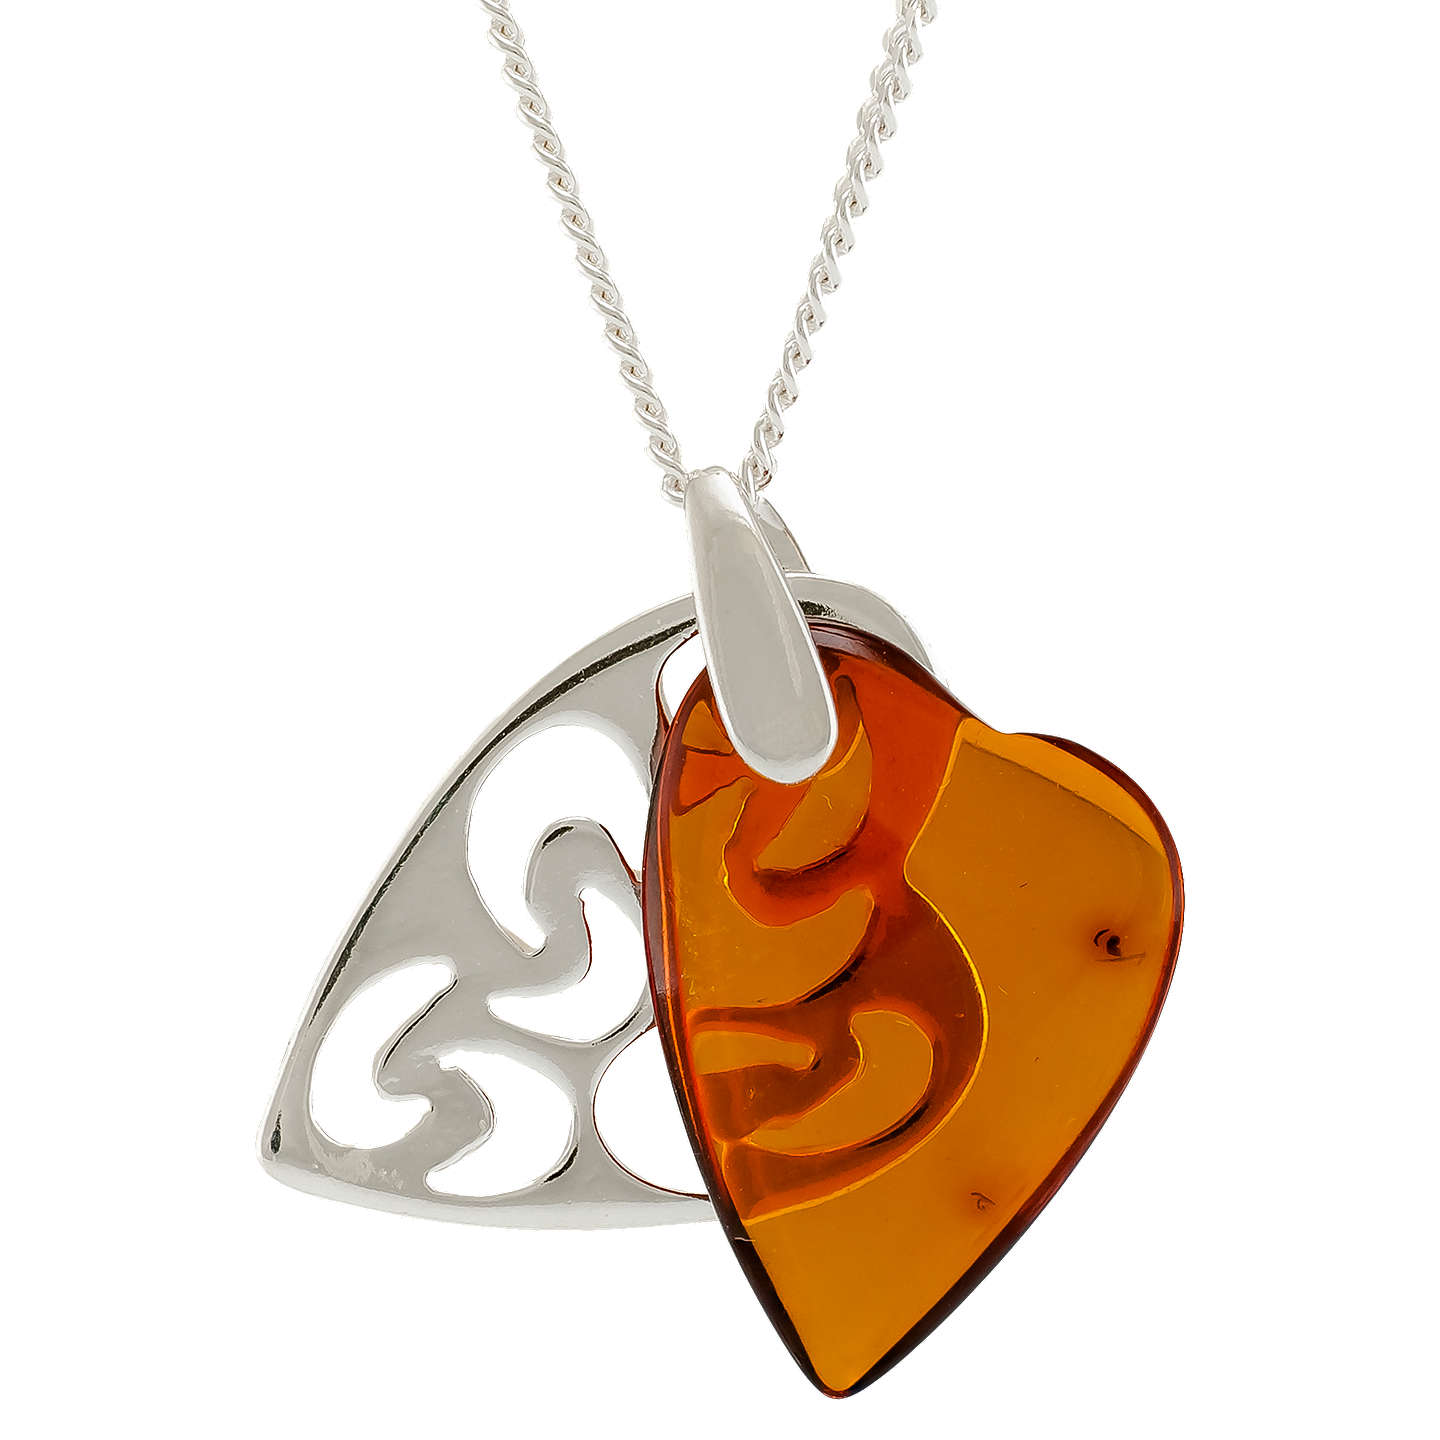 Be jewelled amber filigree double heart pendant necklace cognac at buybe jewelled amber filigree double heart pendant necklace cognac online at johnlewis mozeypictures Image collections